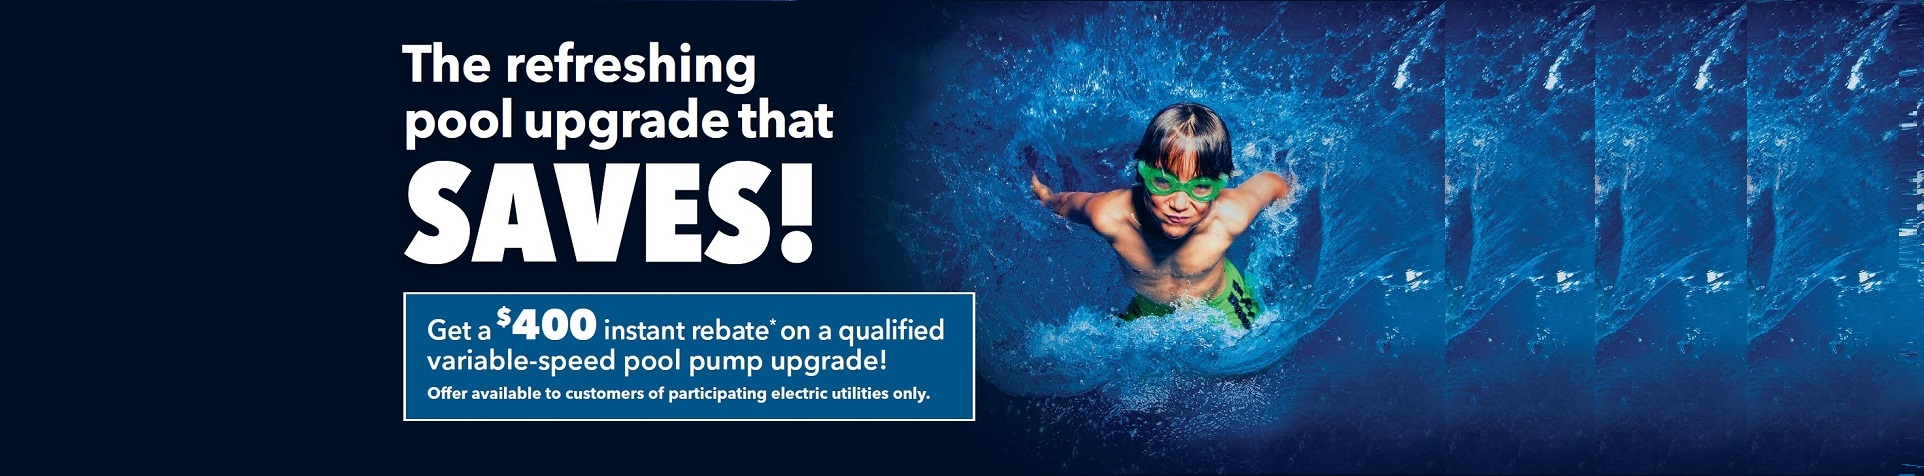 Poolsaver Program